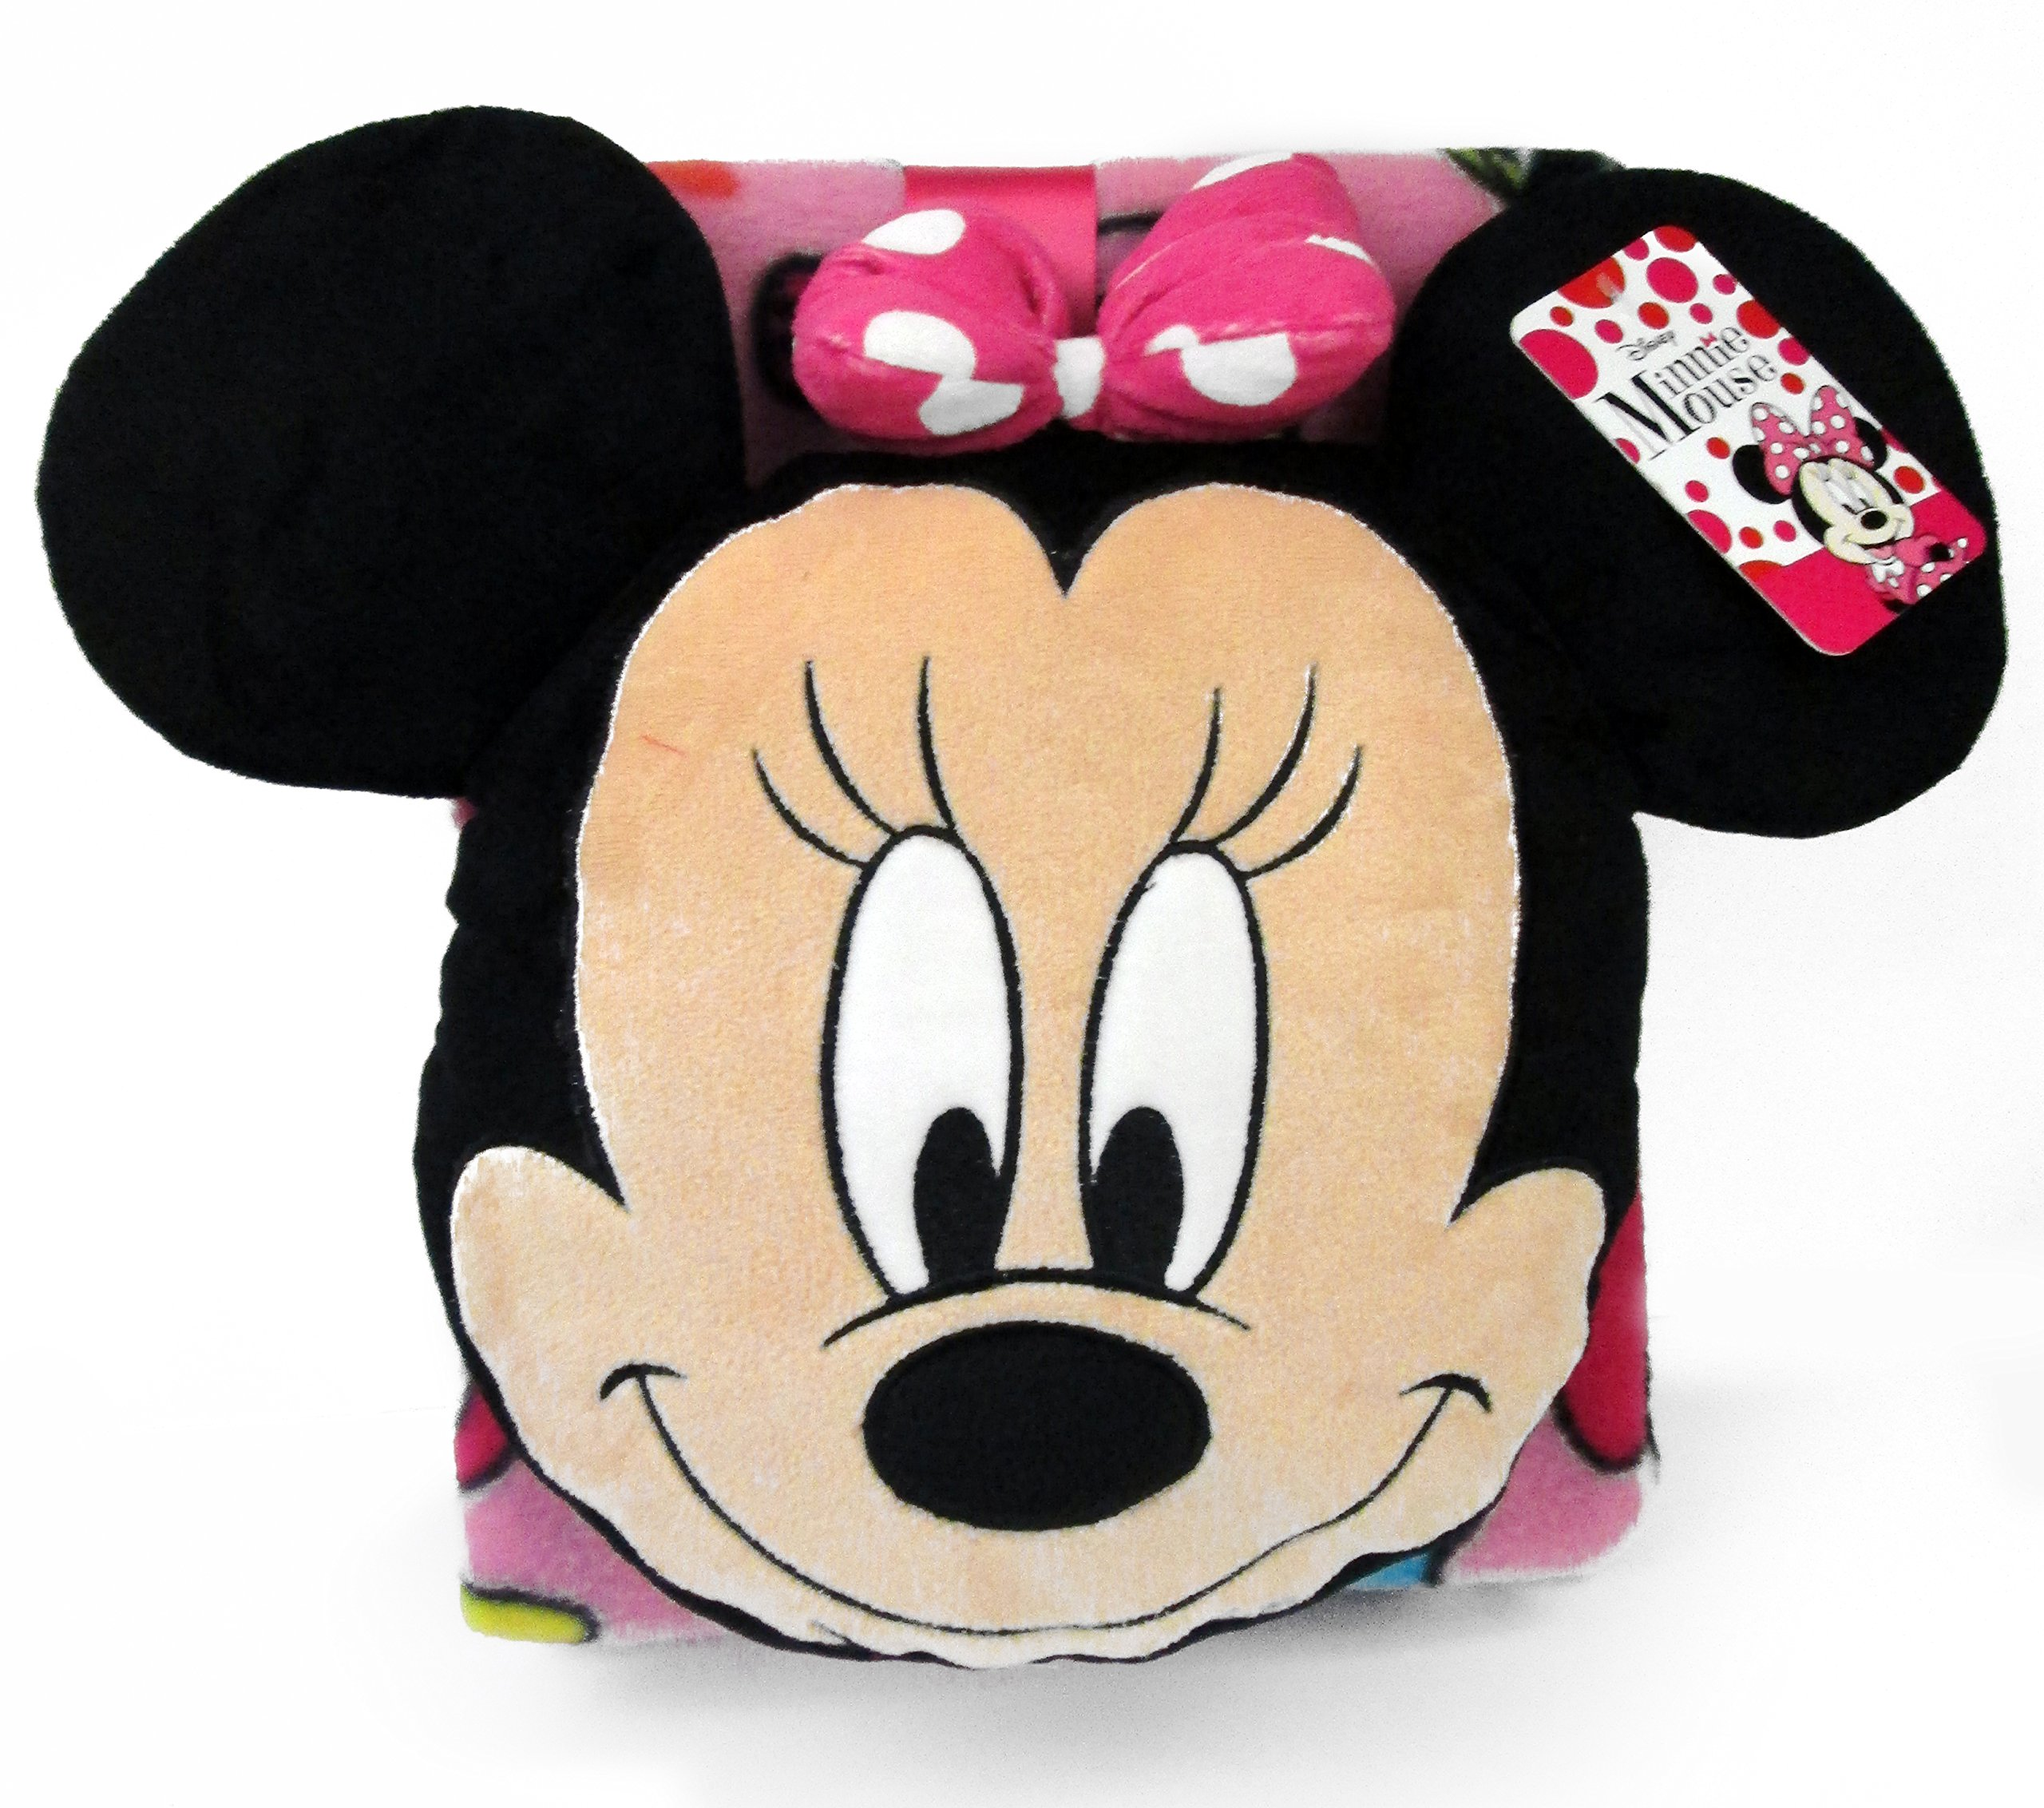 Disney Minnie Mouse Doodle Nogginz Pillow with 40'' x 50'' Travel Blanket Set by Disney (Image #3)